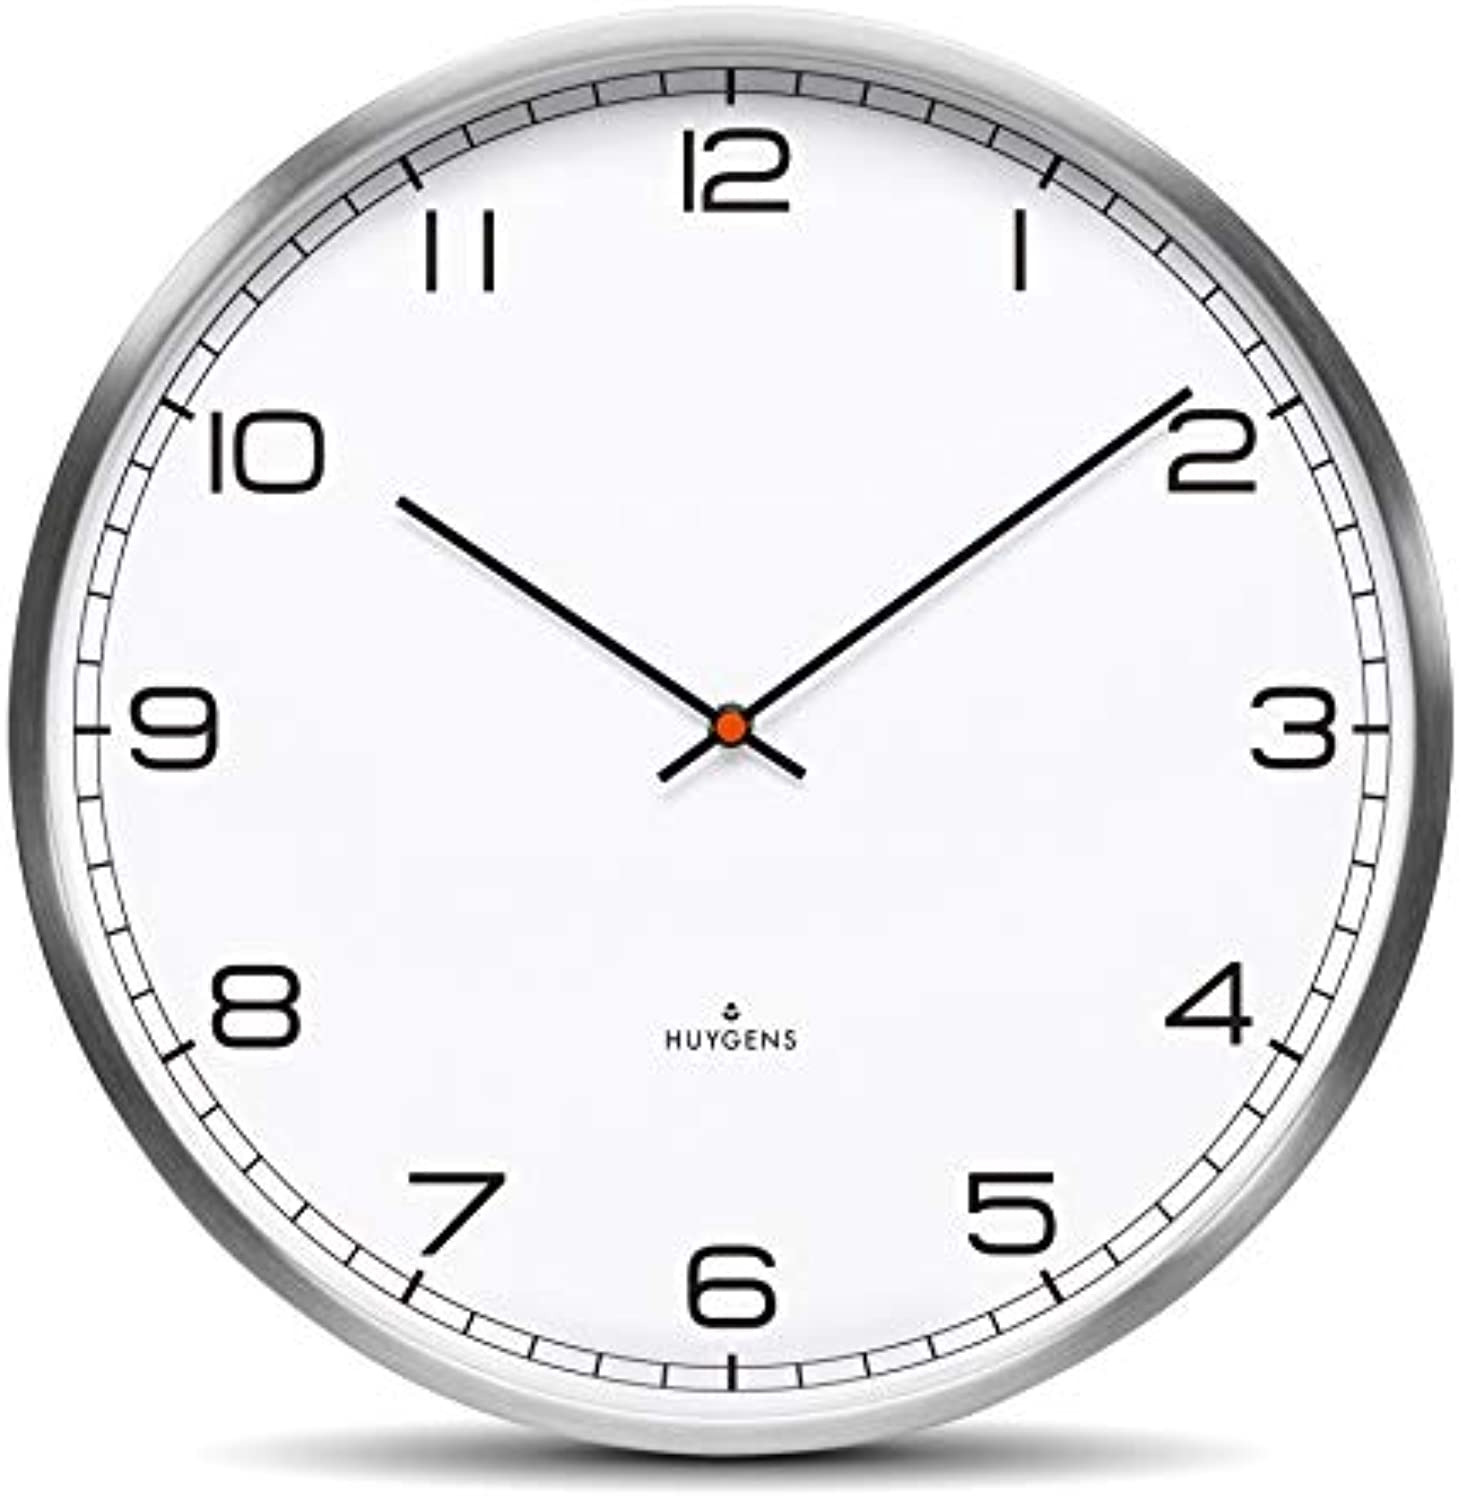 Huygens - One45 - Silent - Wall Clock - Stainless Steel - Weiß - Arabic - Large - 45 cm